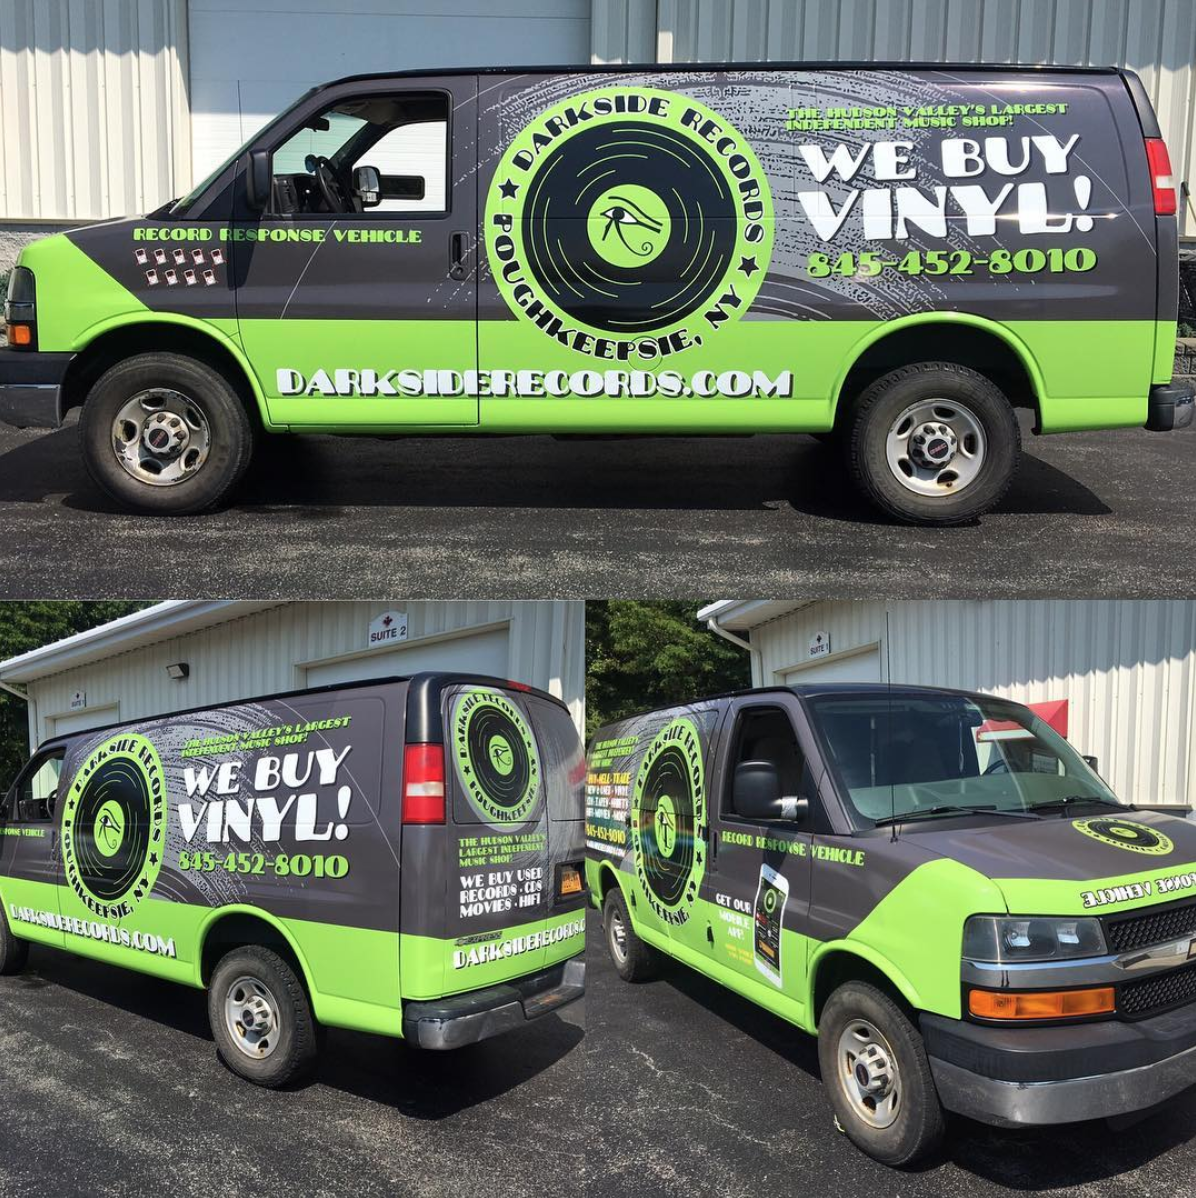 record response vehicle van we travel to purchase large collections